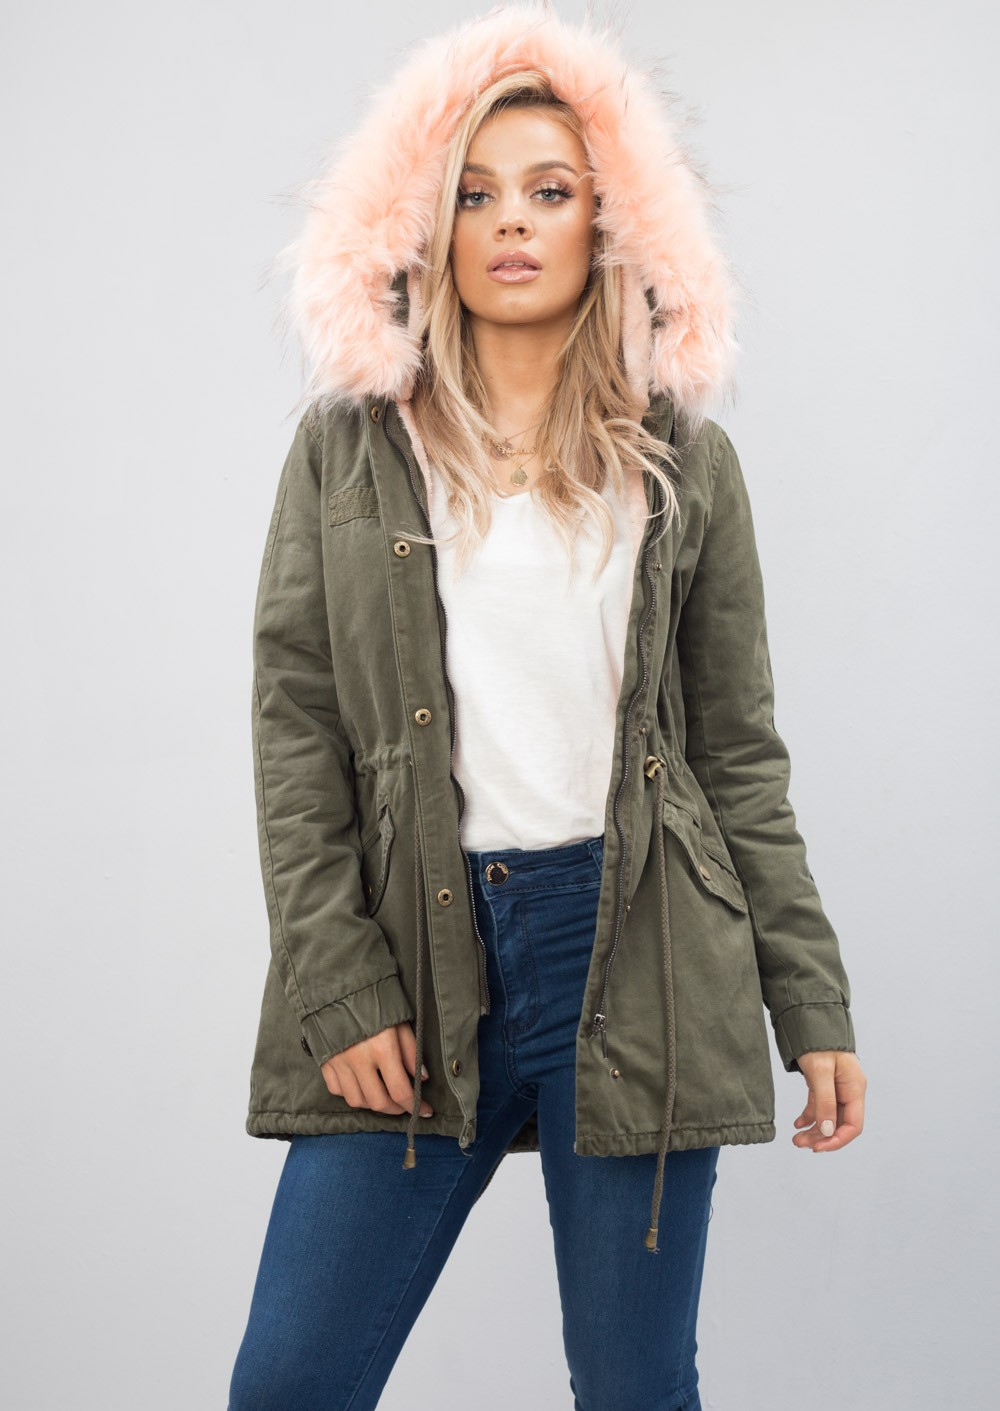 Pink Parka Coat Fashion Women S Coat 2017